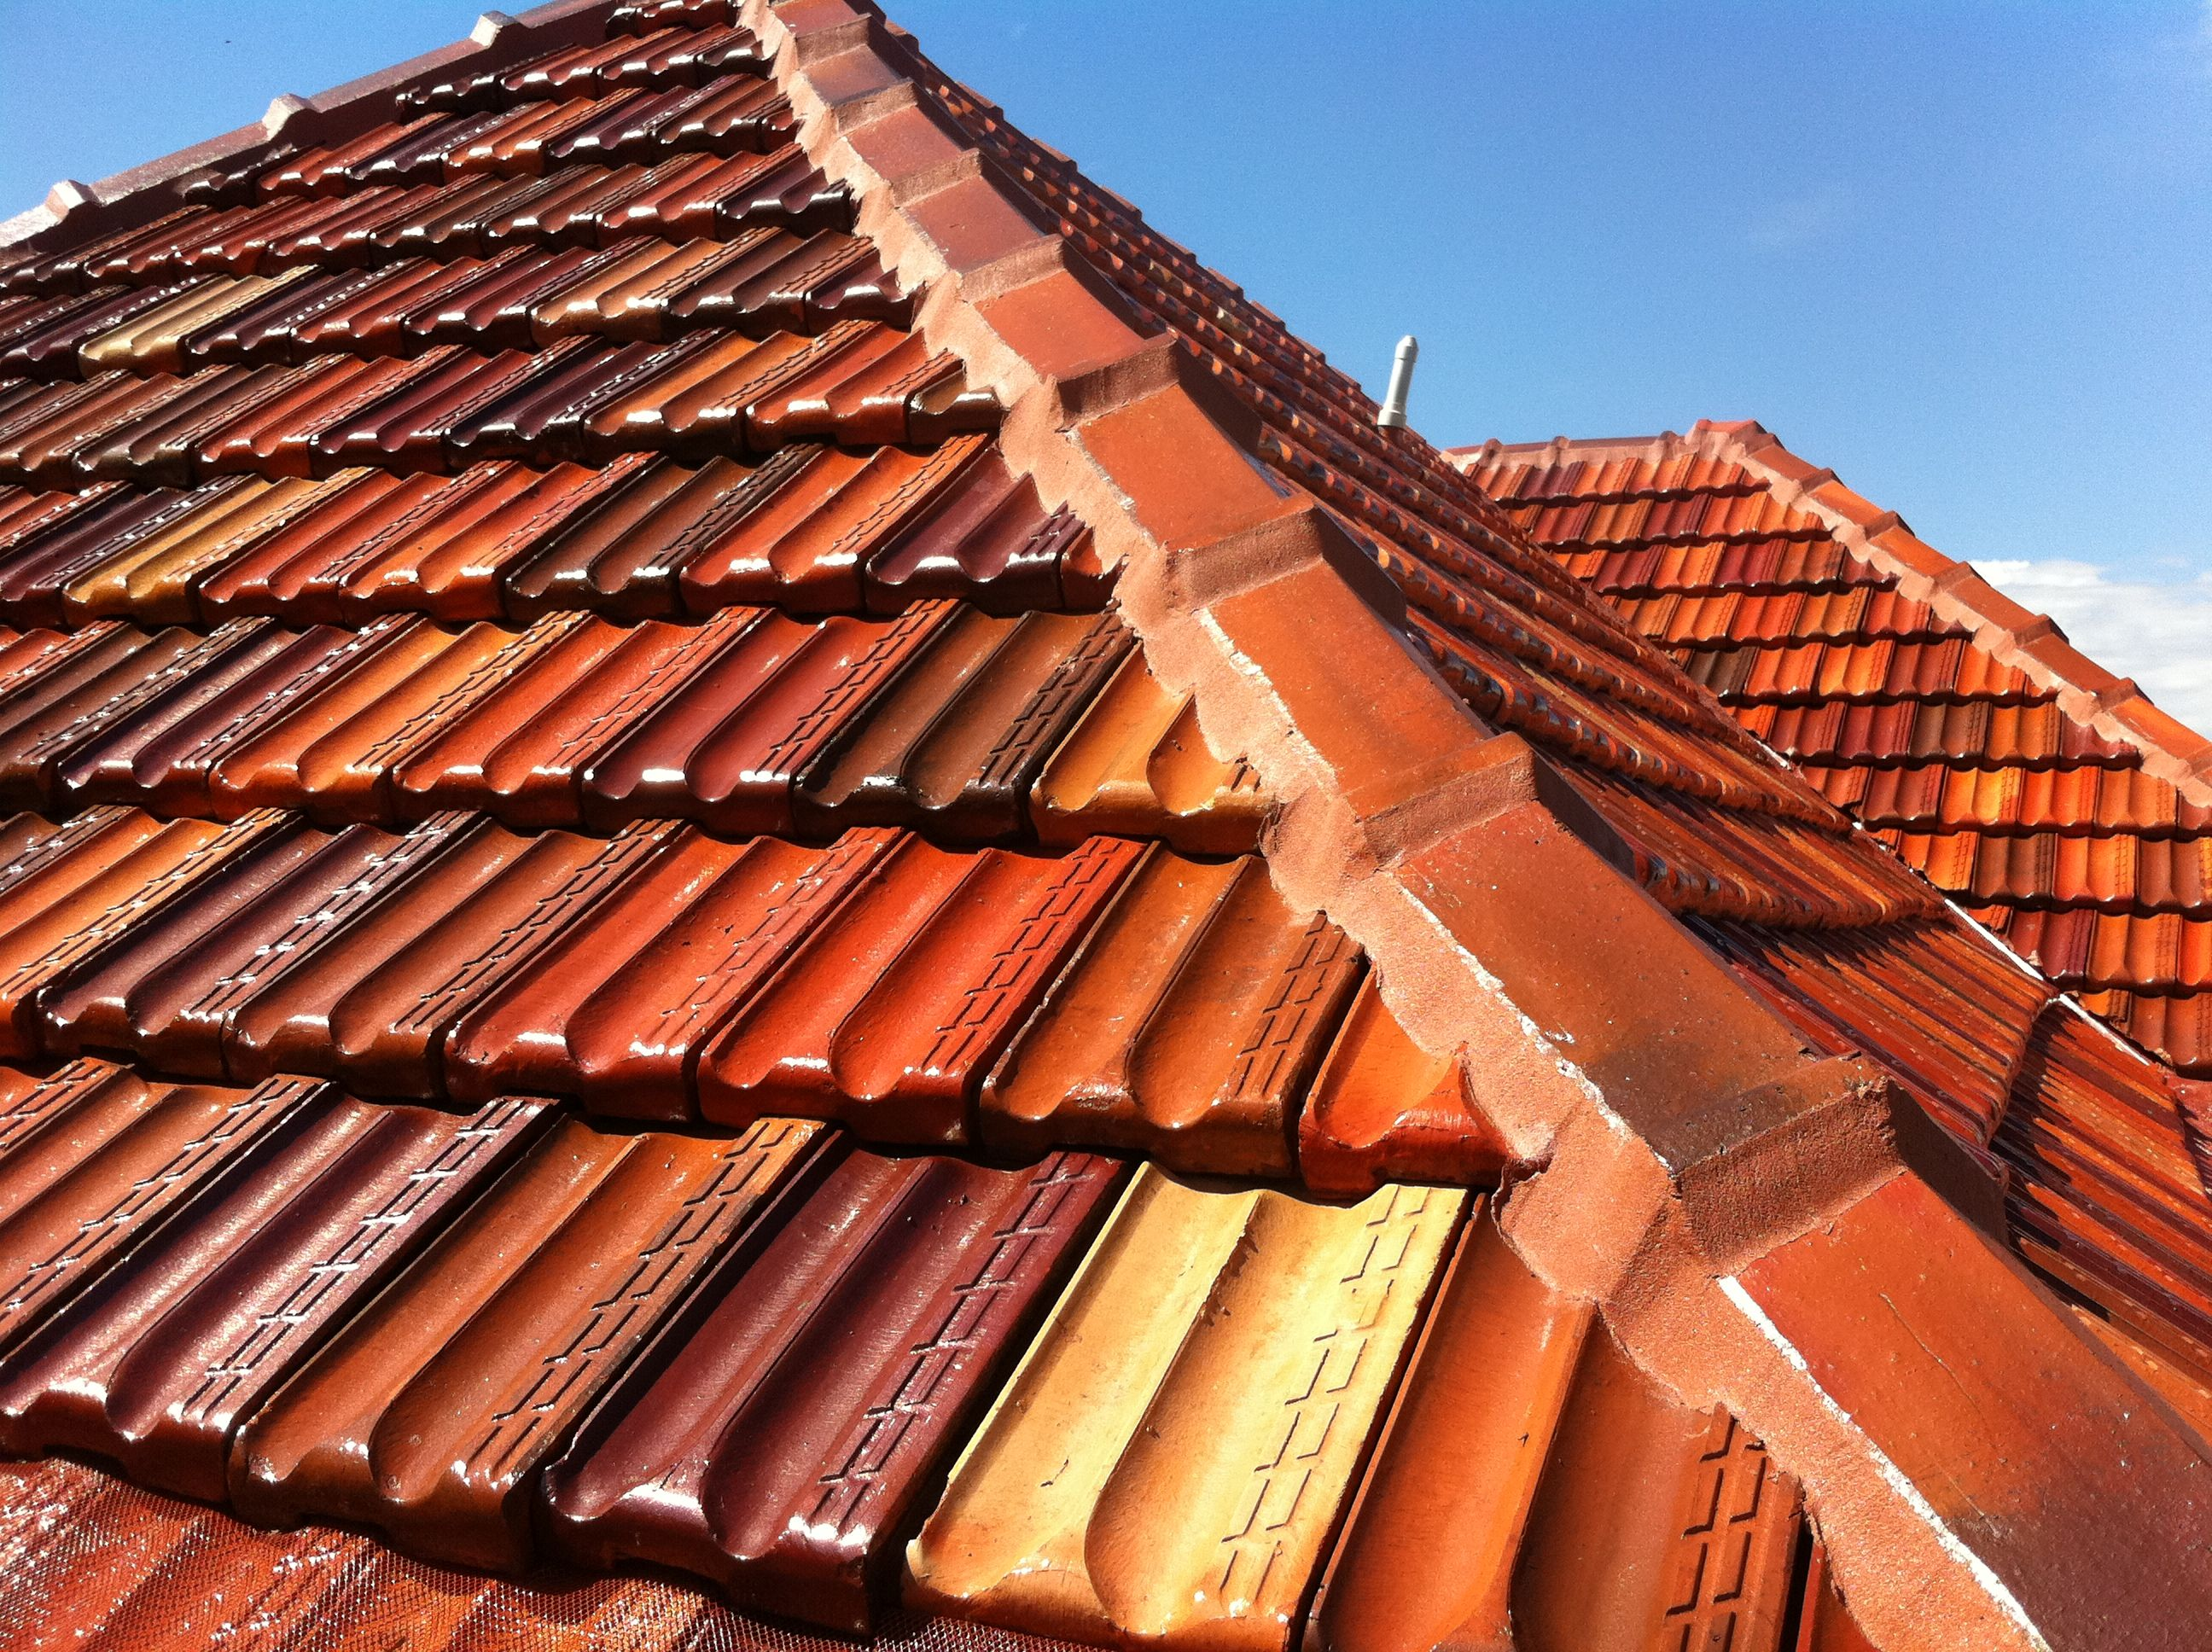 Roof Paramedics Is The Primary Source For All Your Roofing Needs Roof Paramedics Providing Metal Roof Restoration In 2020 Roof Restoration Alternative Energy Roofing